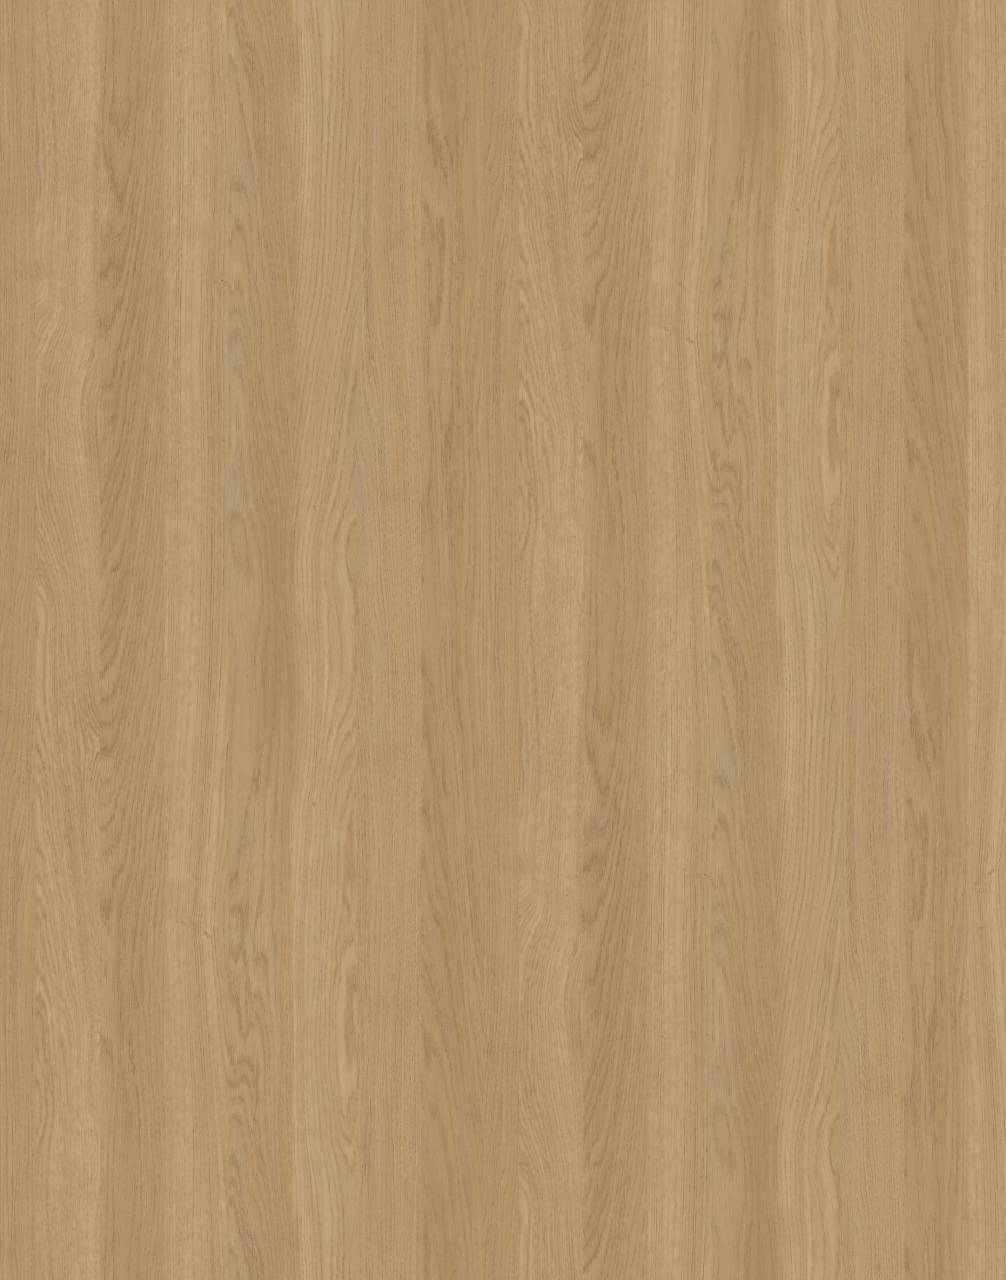 8925 Lissa Oak (MF PB sample)